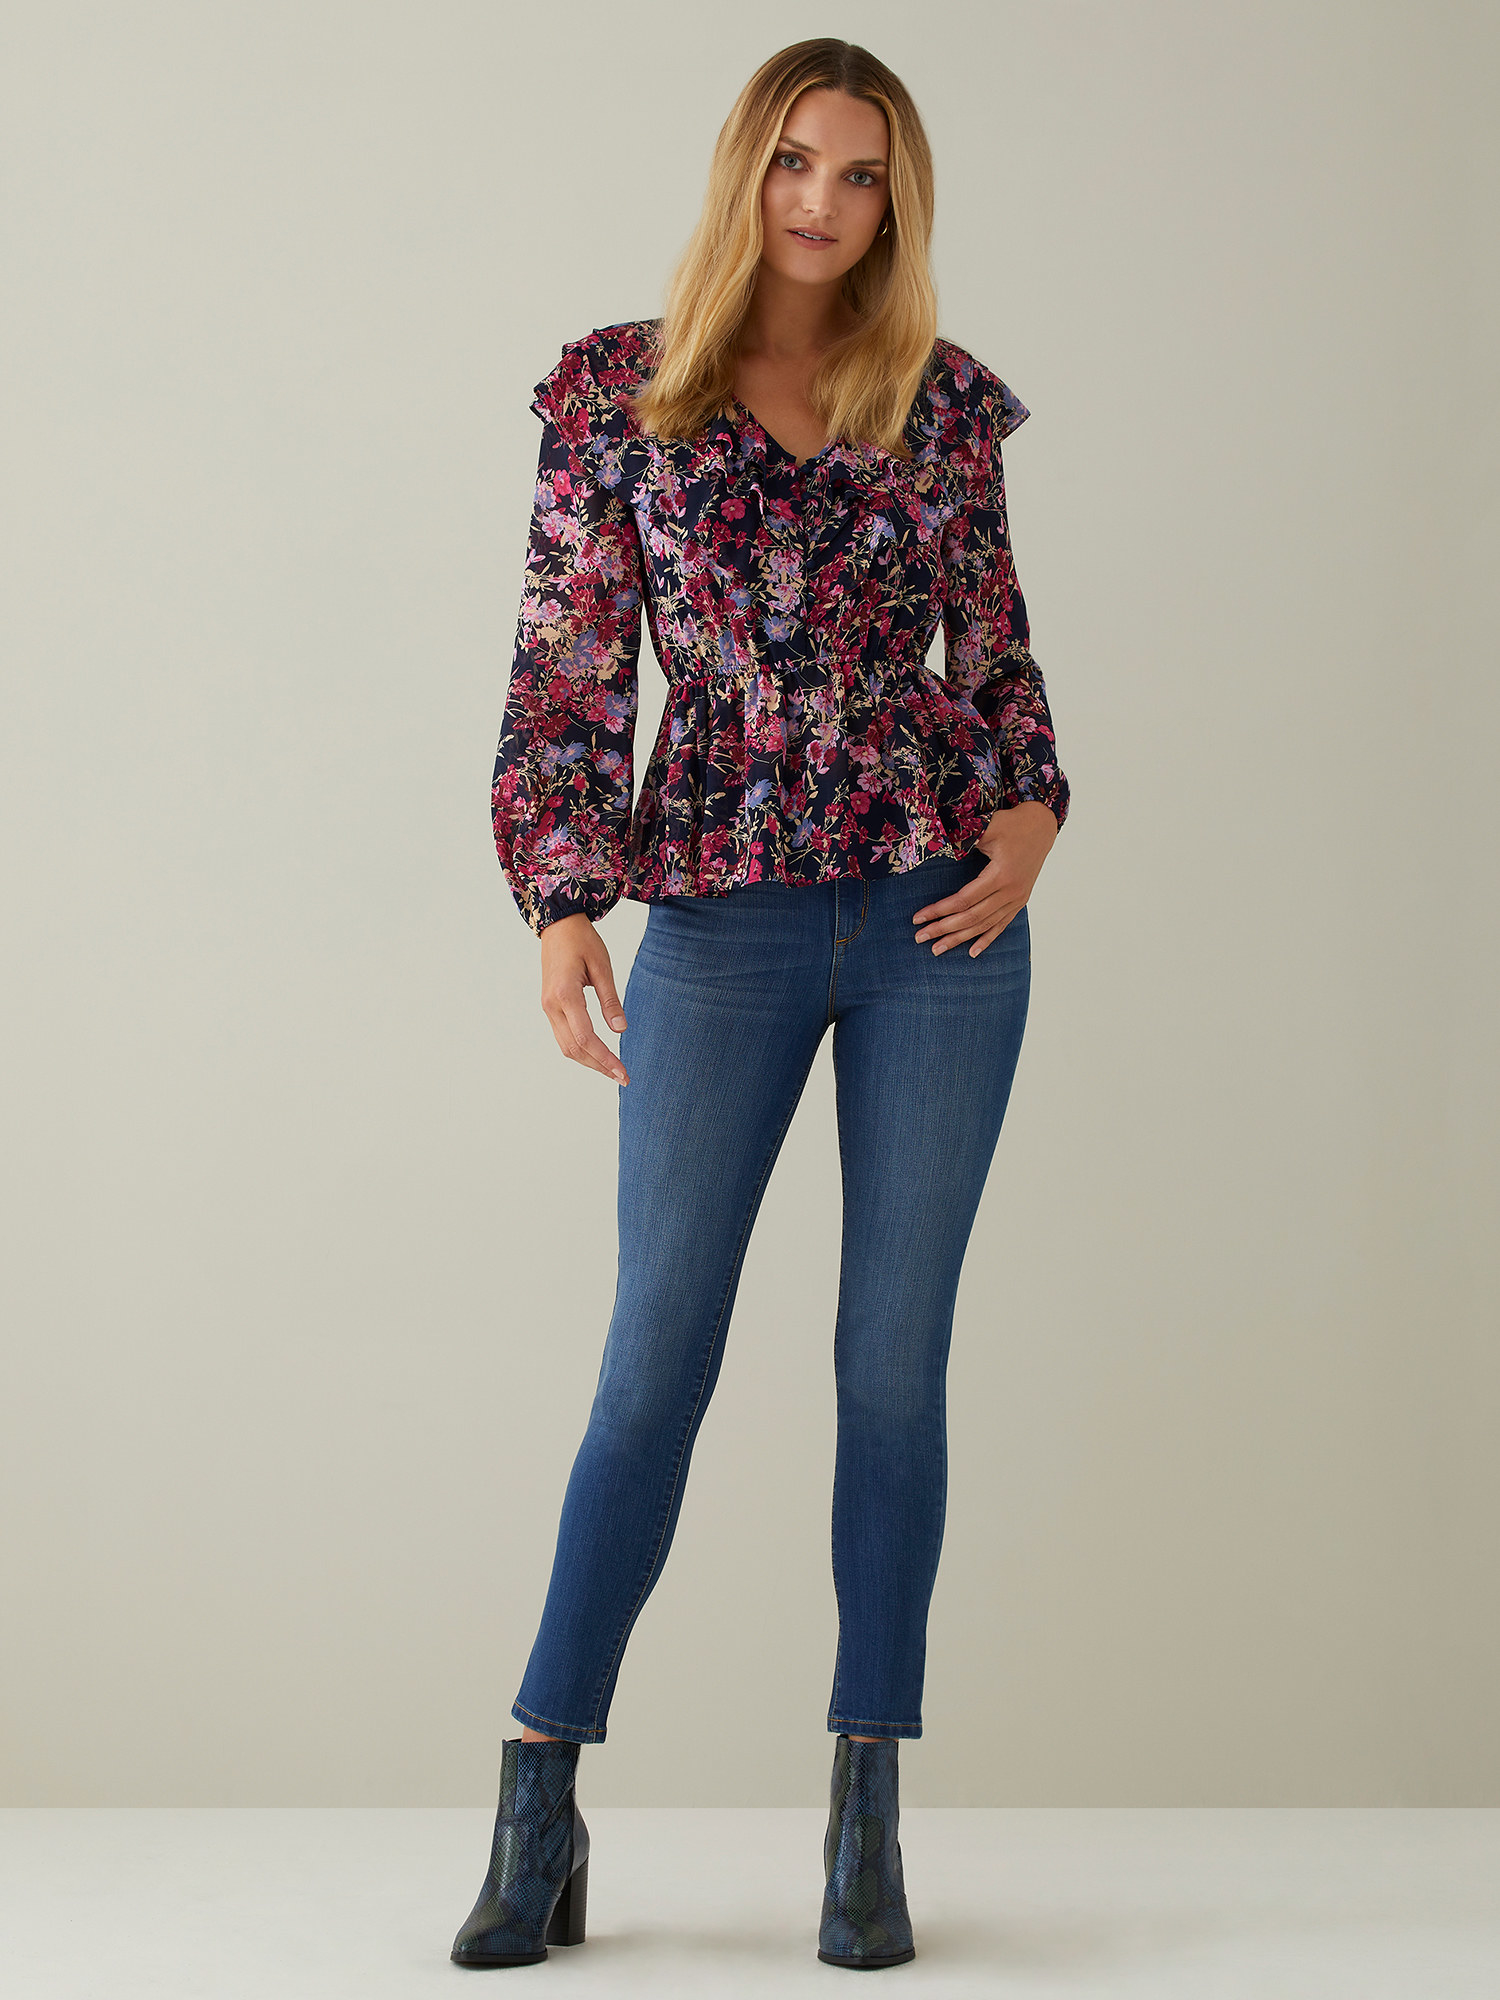 Model wearing the pink and black ruffled blouse